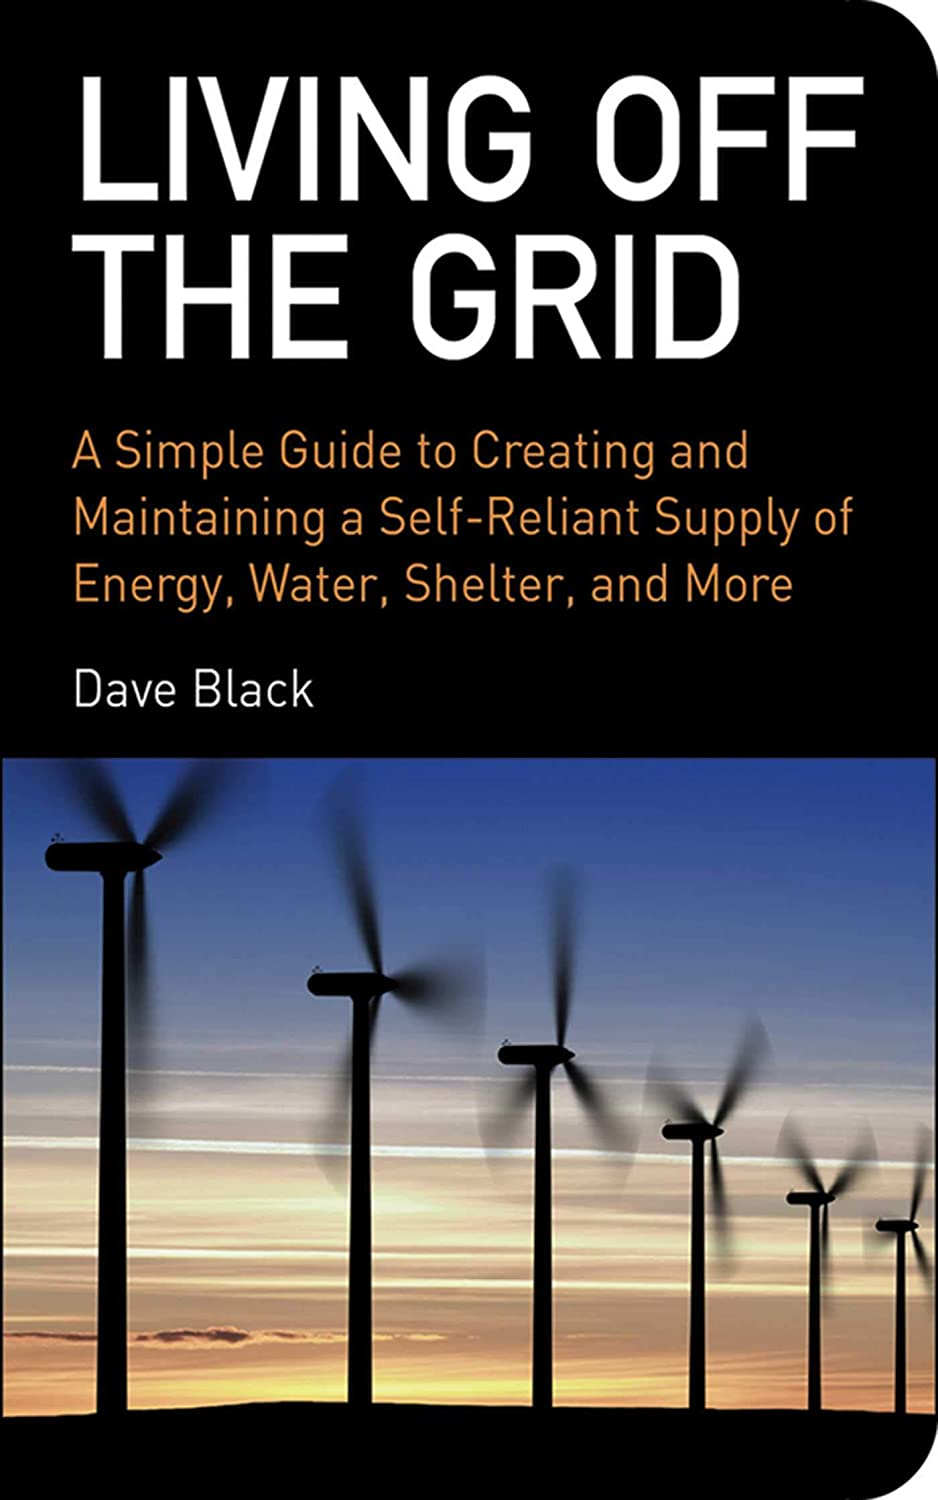 1602393168 Books Living Off The Grid Book 71hYKFf7gqL